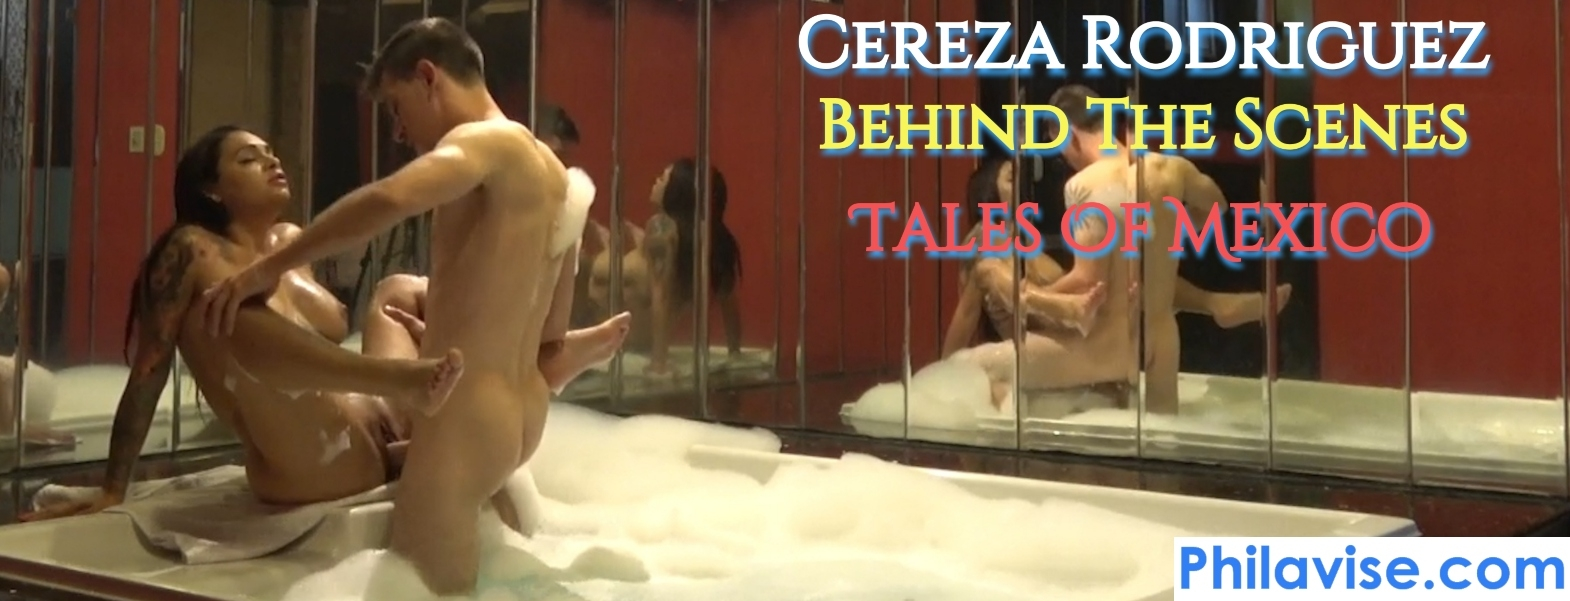 Behind_The_Scenes_With_Cereza_Rodriguez